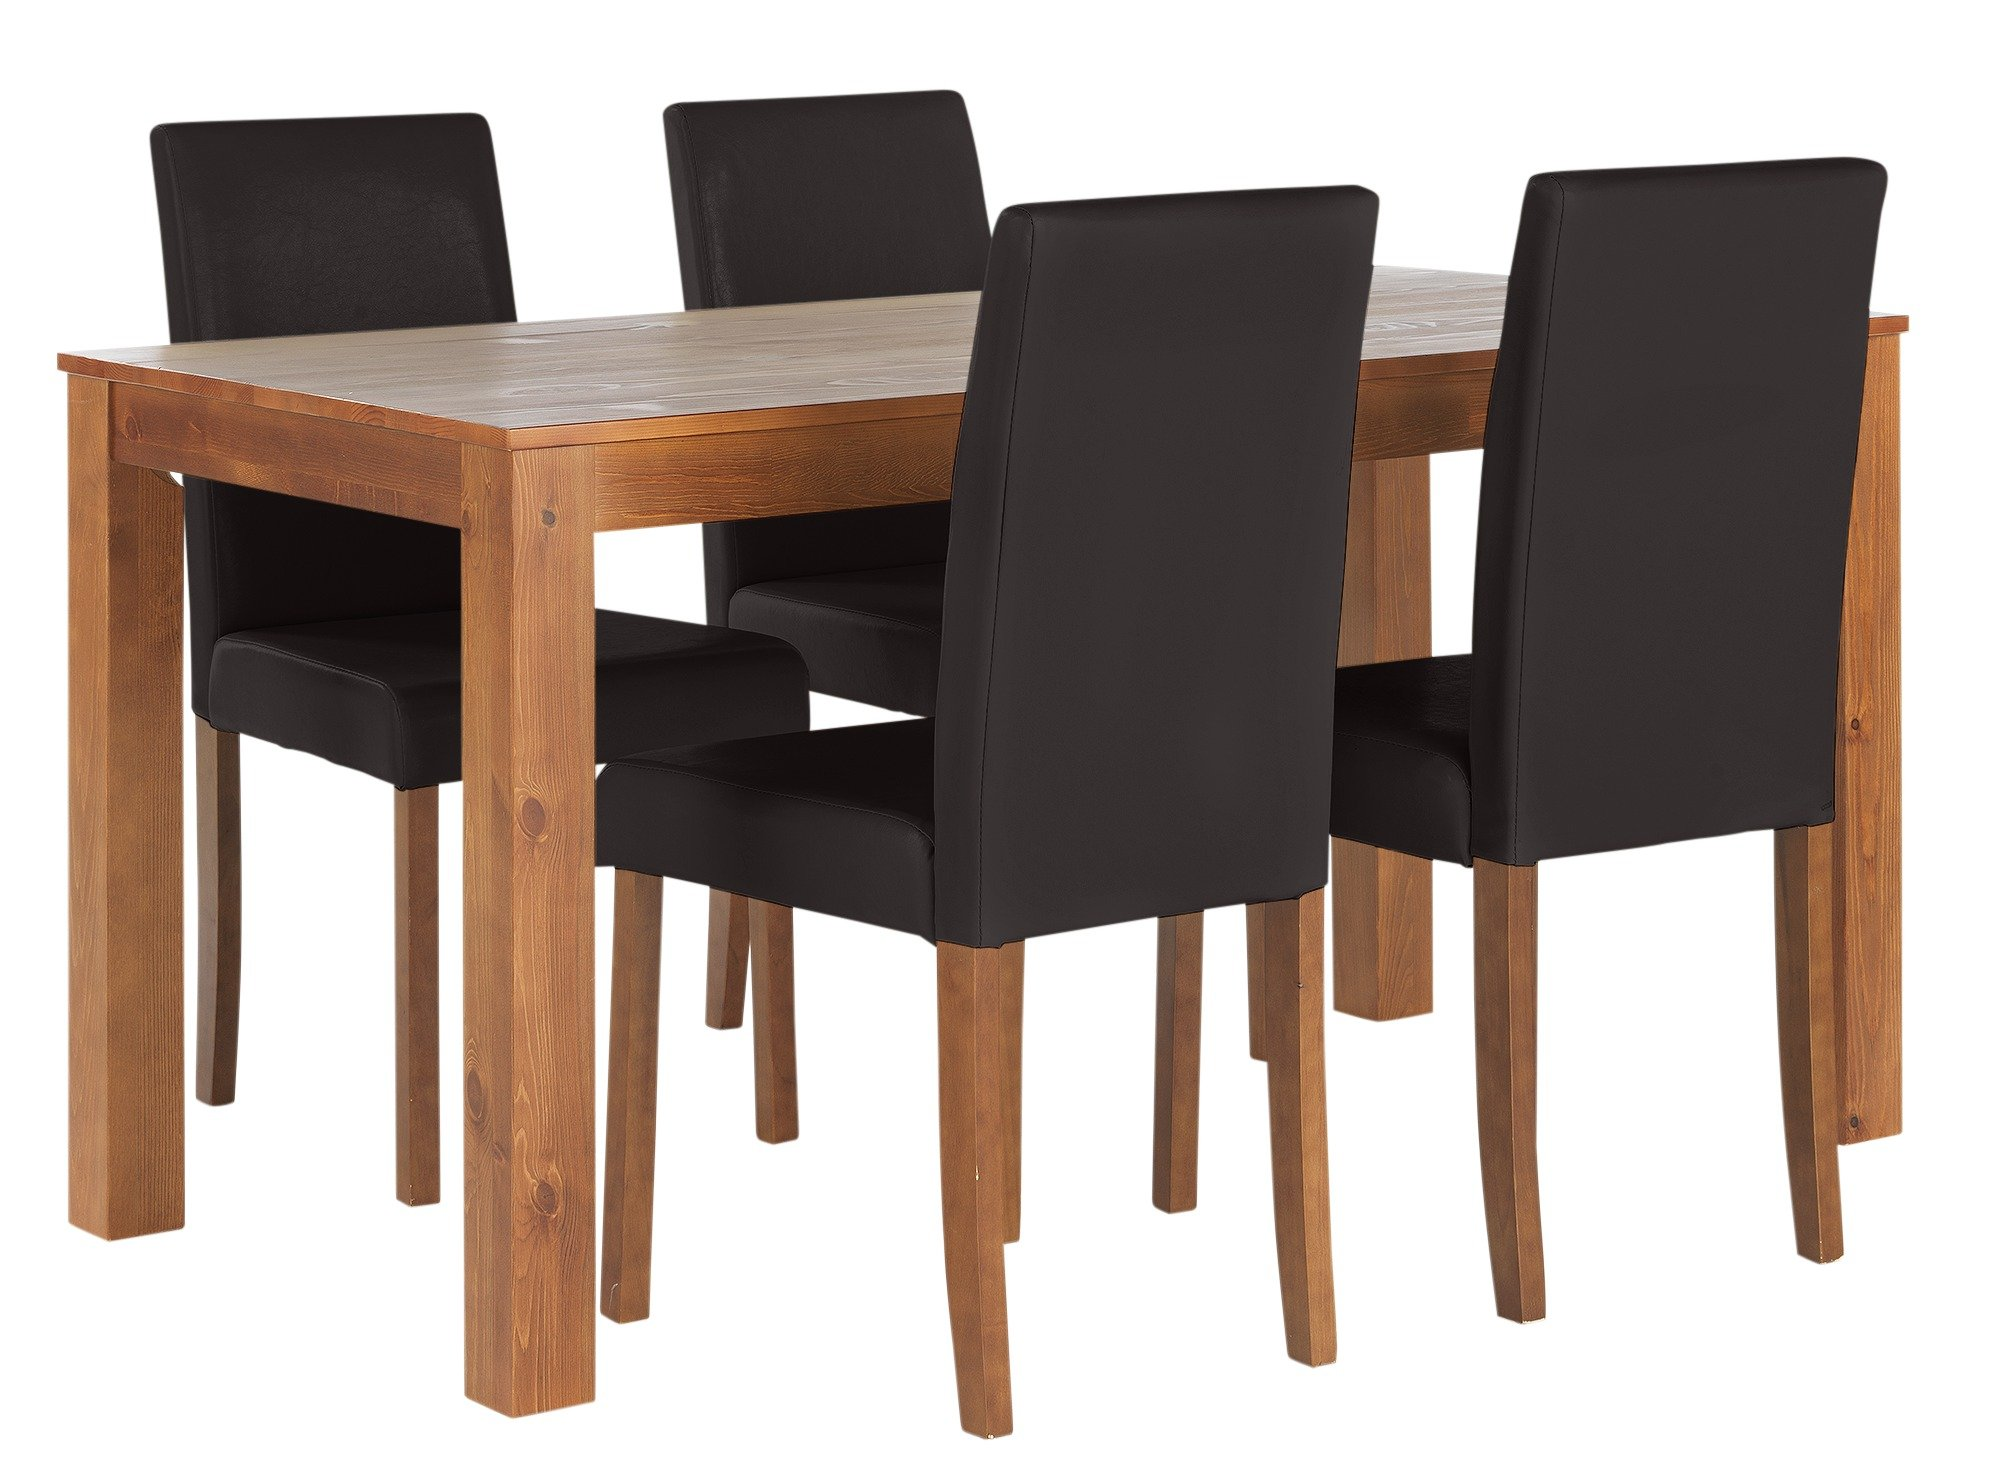 Buy HOME Newton Solid Wood Table amp 4 Mid Back Chairs  : 4536893RZ001AWebampw570amph513 from www.argos.co.uk size 570 x 513 jpeg 25kB